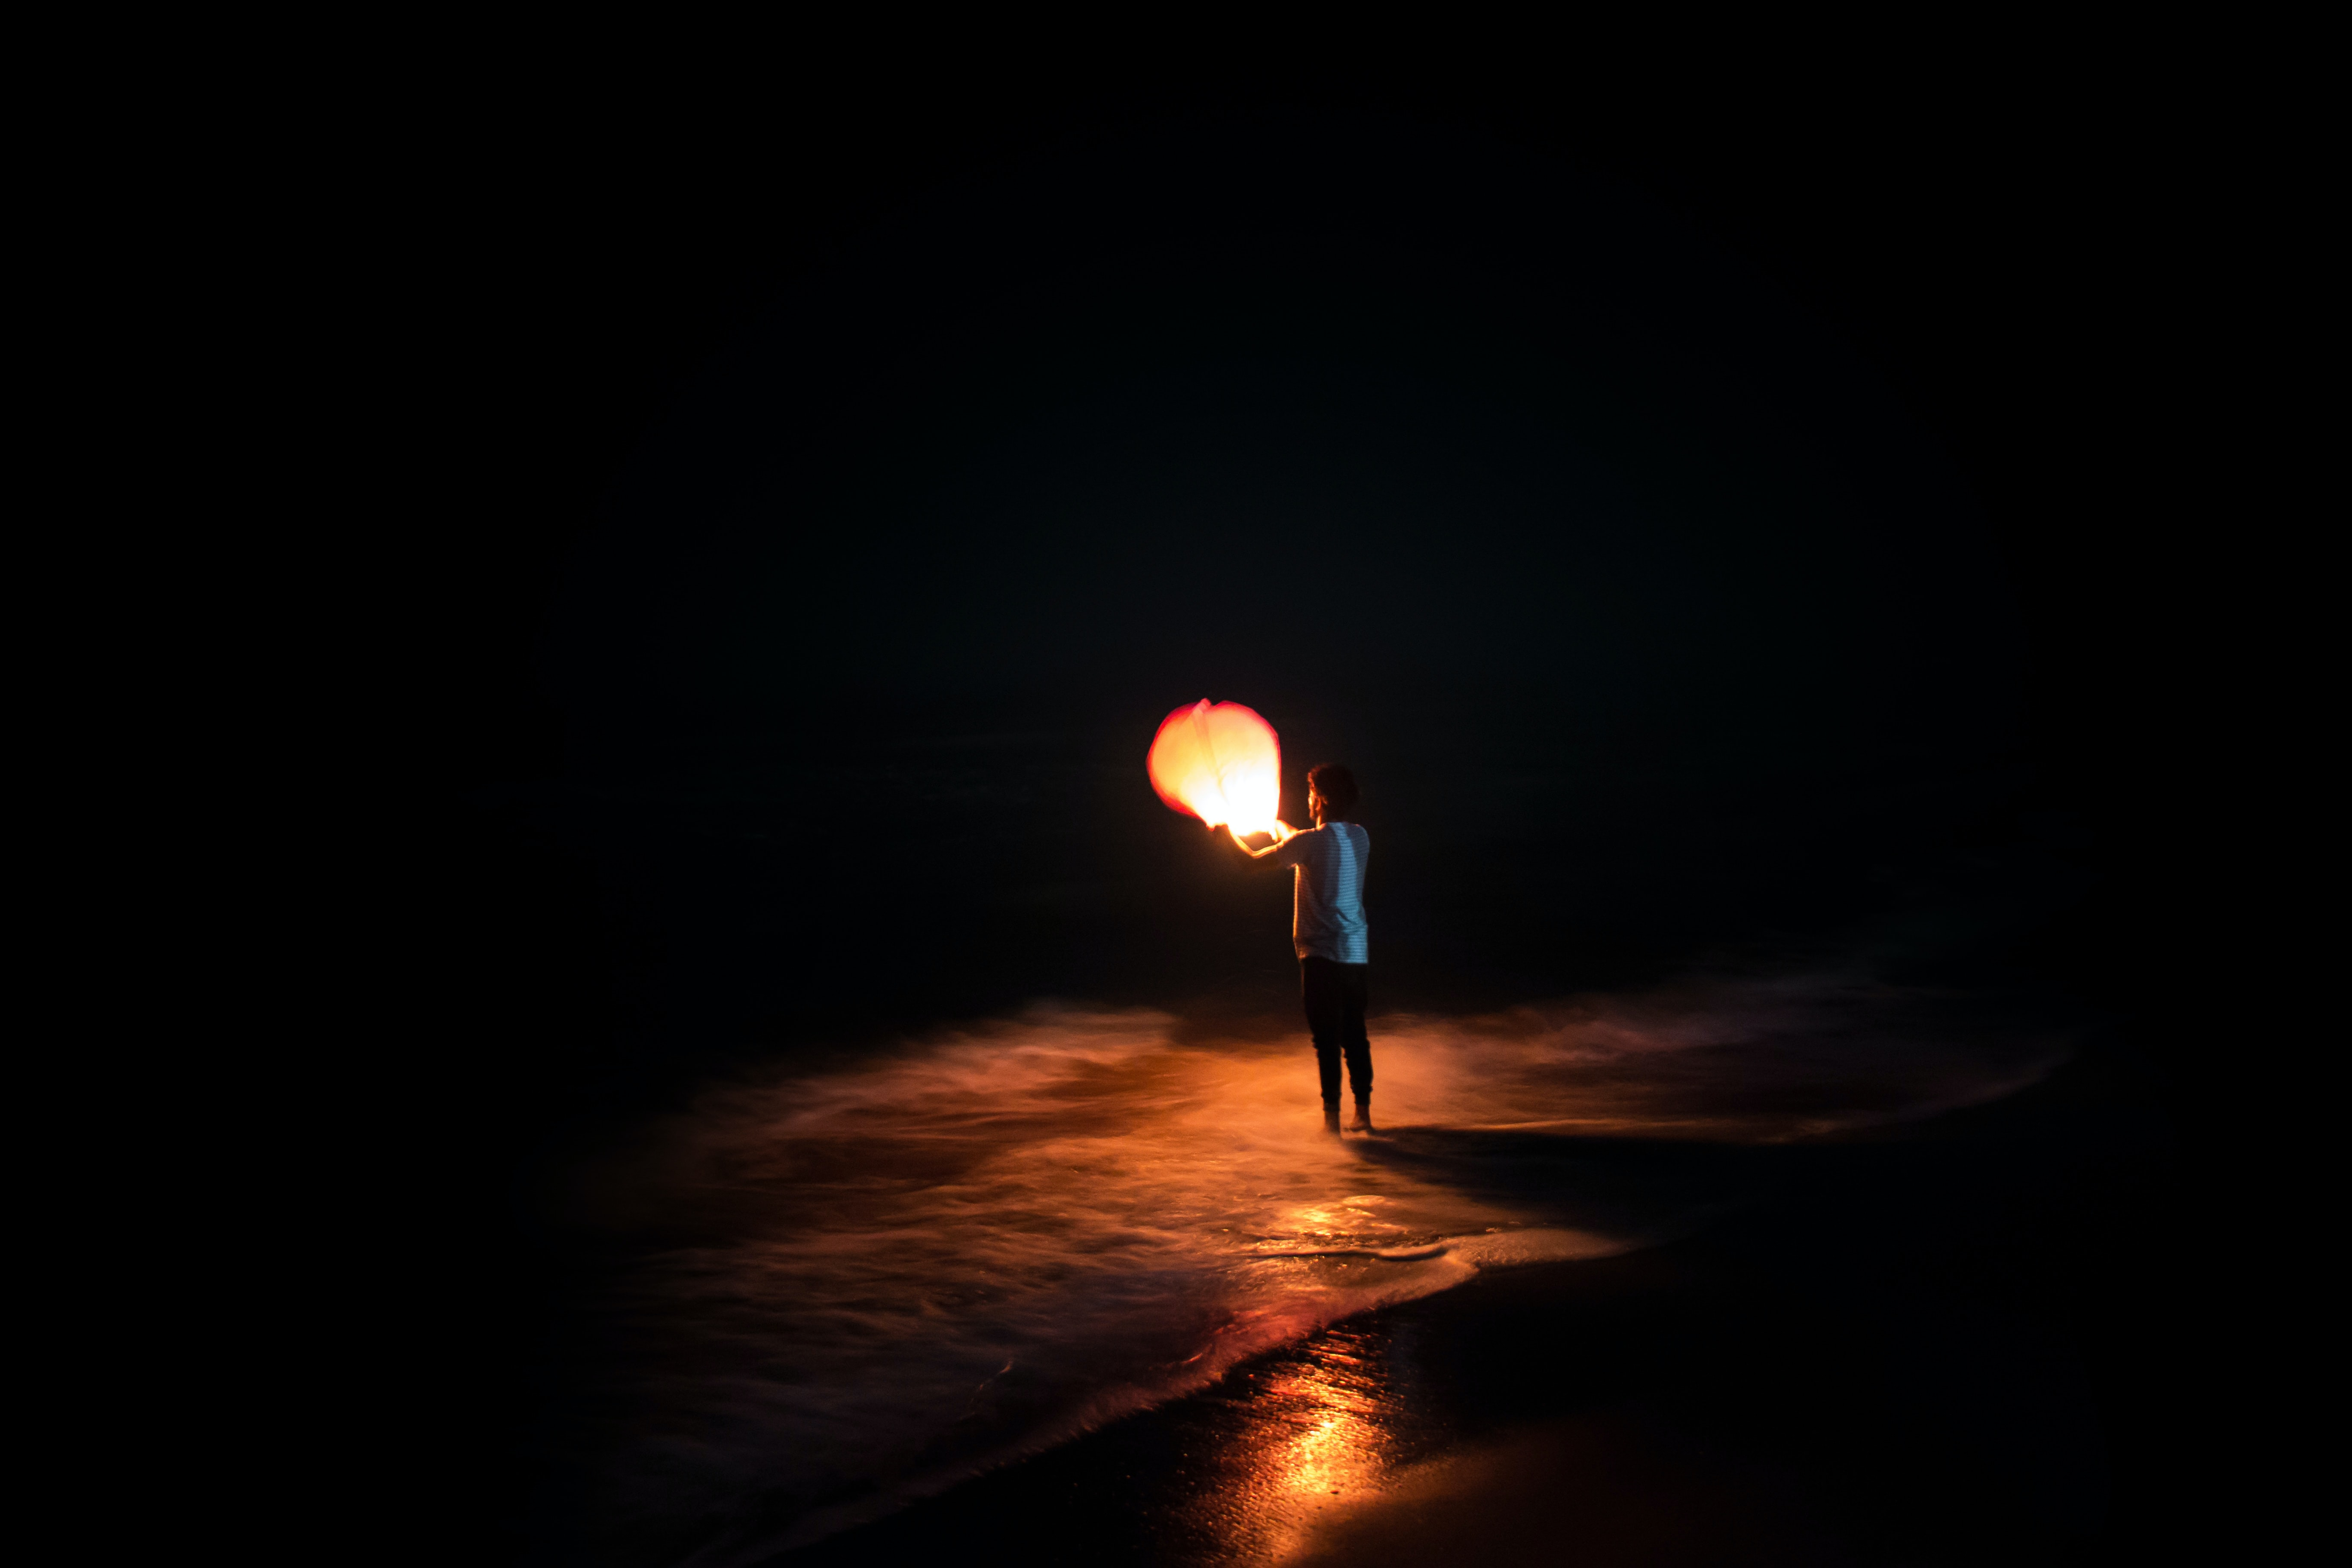 Person holding a lit lantern on a beach in dark at Kannur